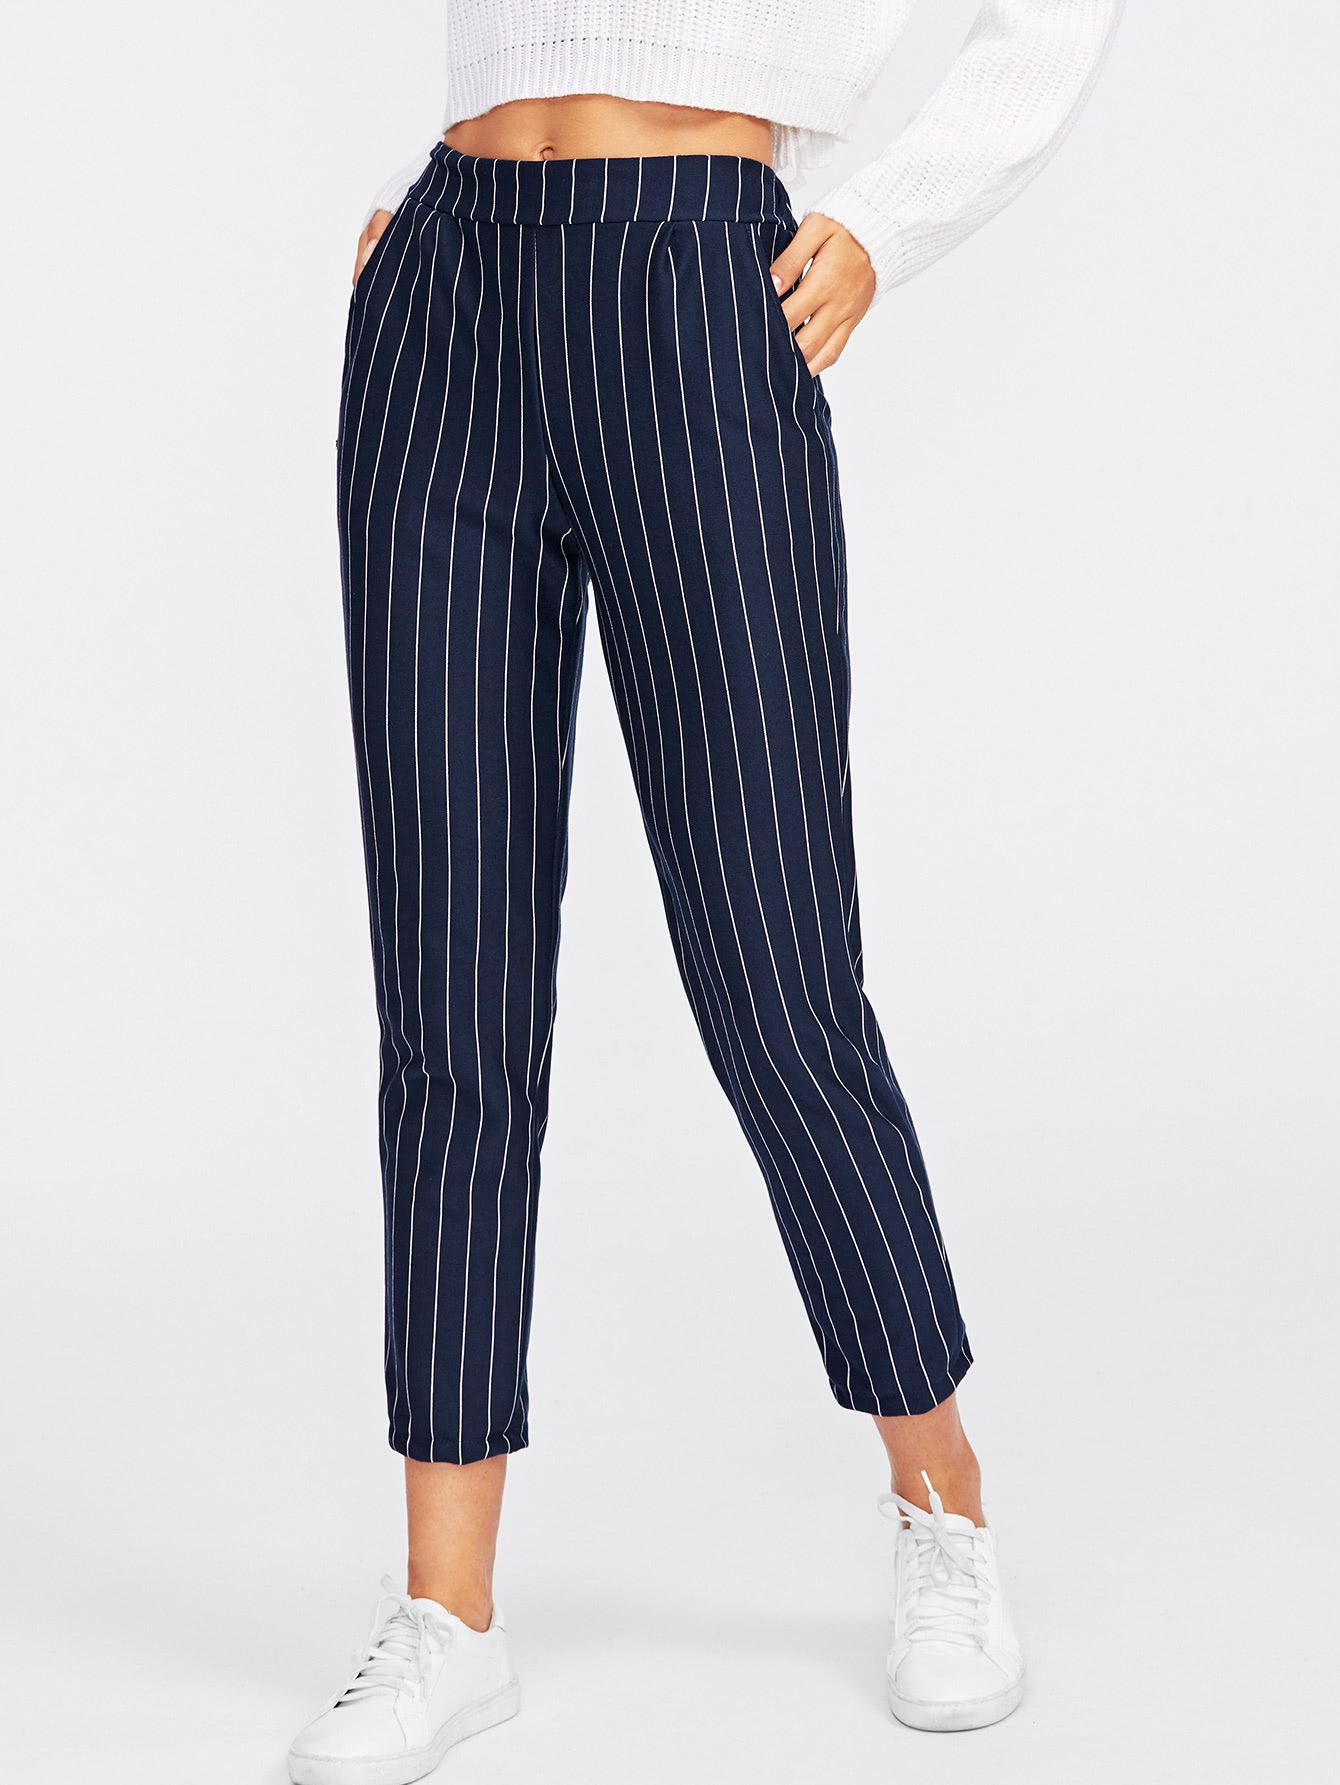 9464c731ce $8.99 Pinstriped Capri Pants Navy -- Women's Summer Casual Style Fashion  Outfit #CasualStyle #StreetStyle